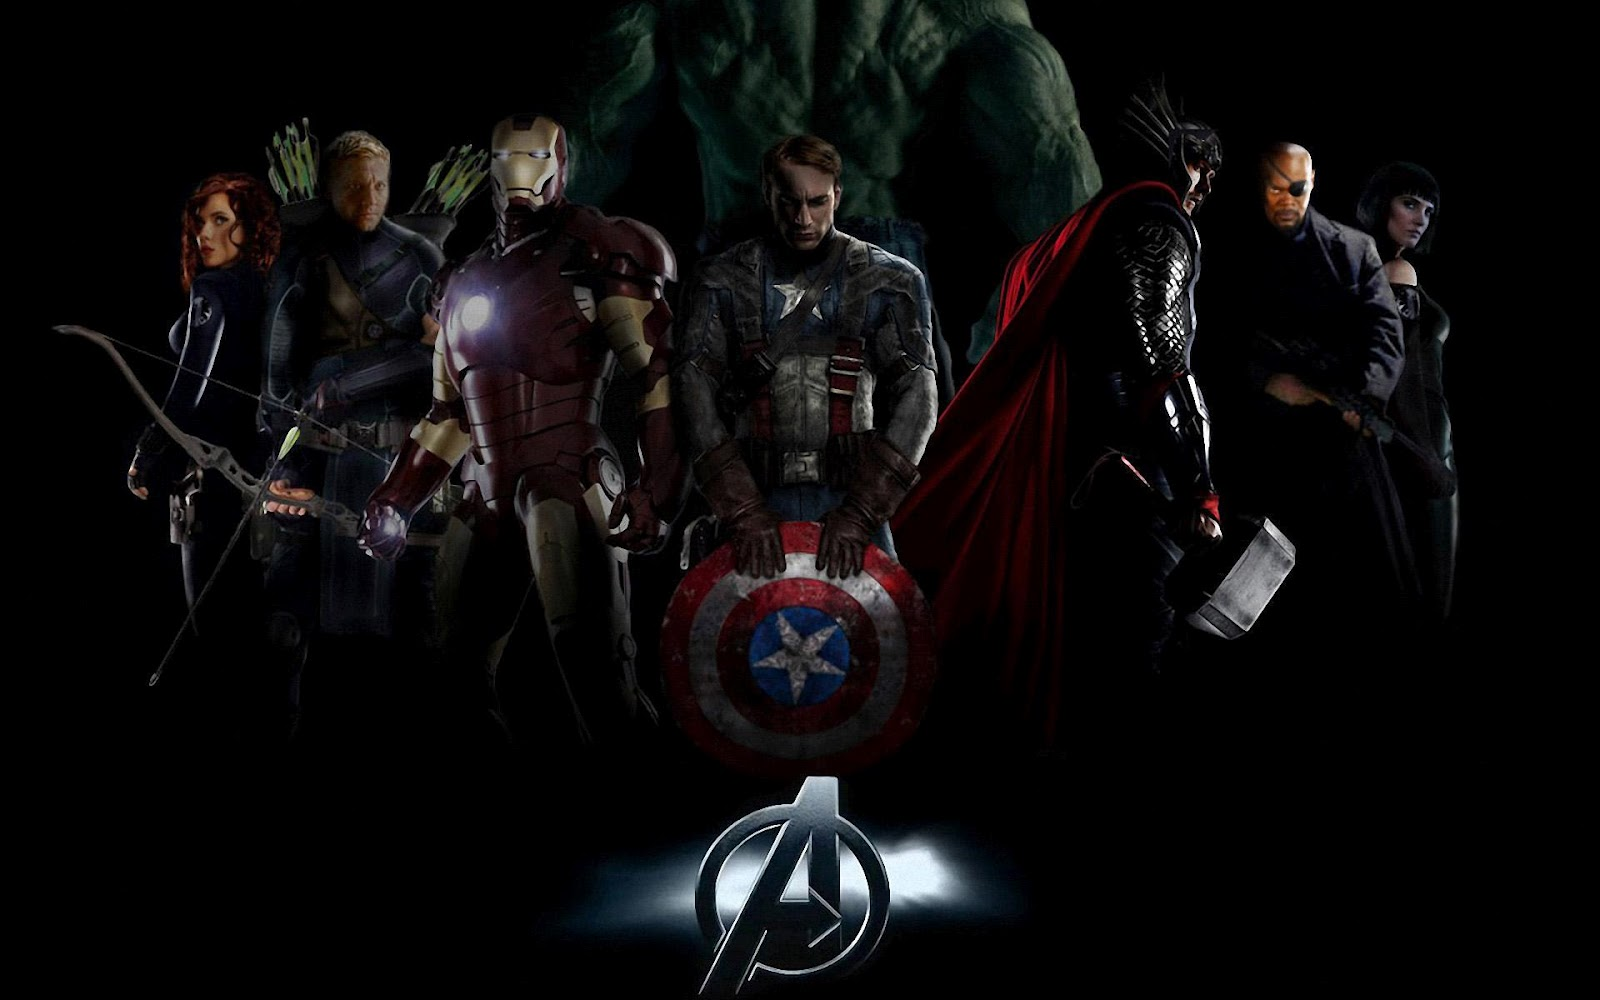 HD wallpaper The Avengers Movie Hd Wallpapers HD Pictures 2013 by 1600x1000